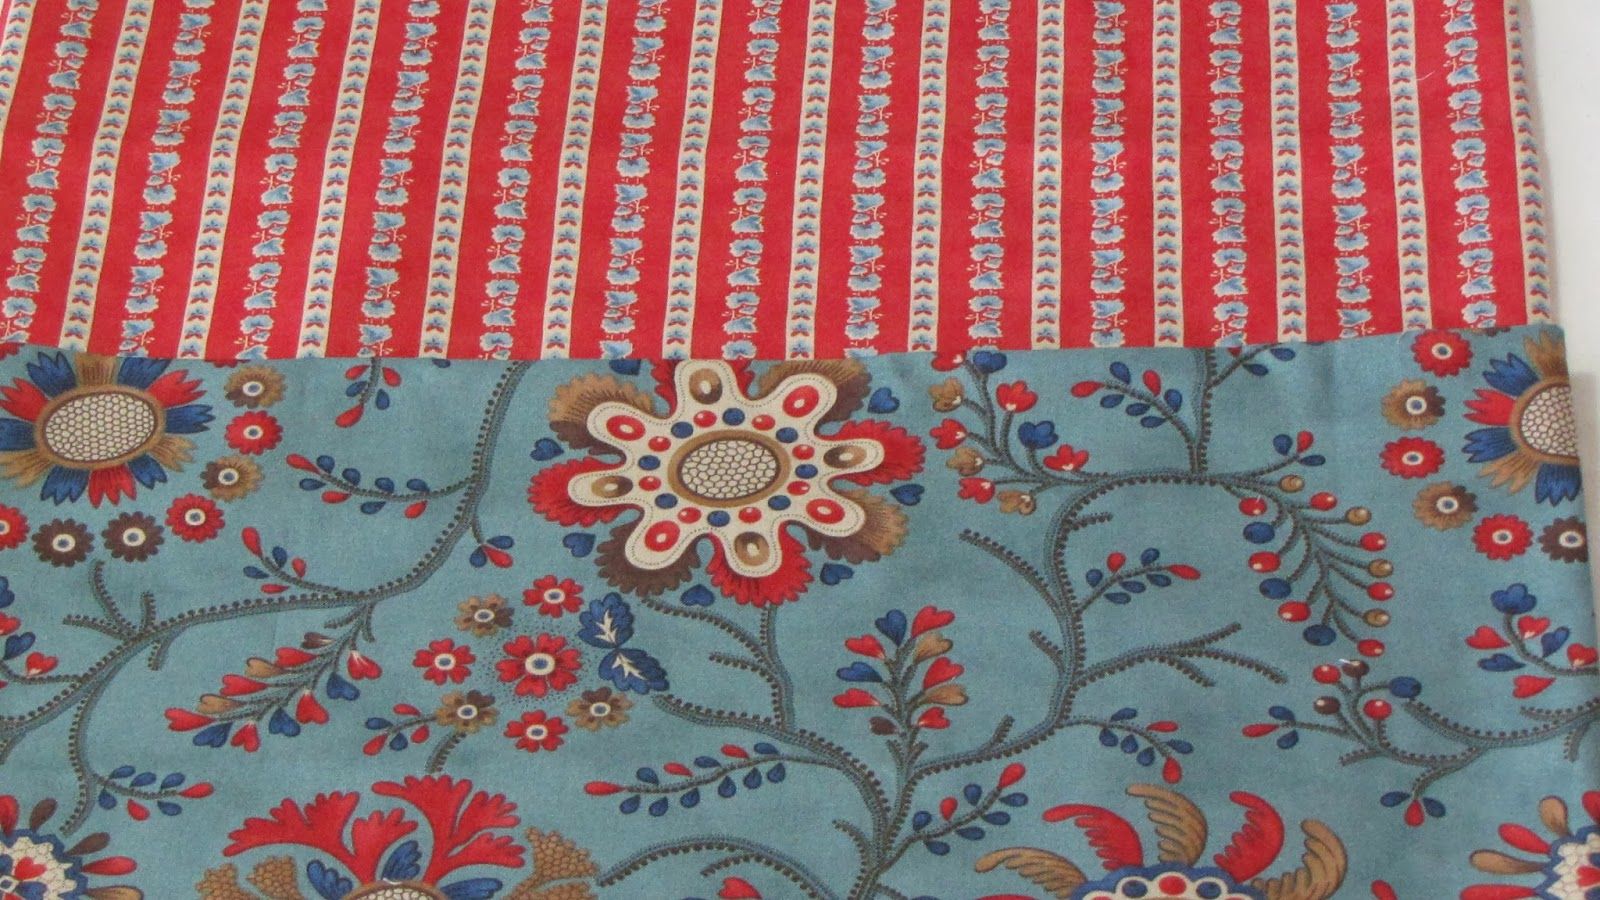 Vinyl Mesh Fabric For Sling Chairs Old Ritter Dental Chair Stitching 4 Joy Shoppe